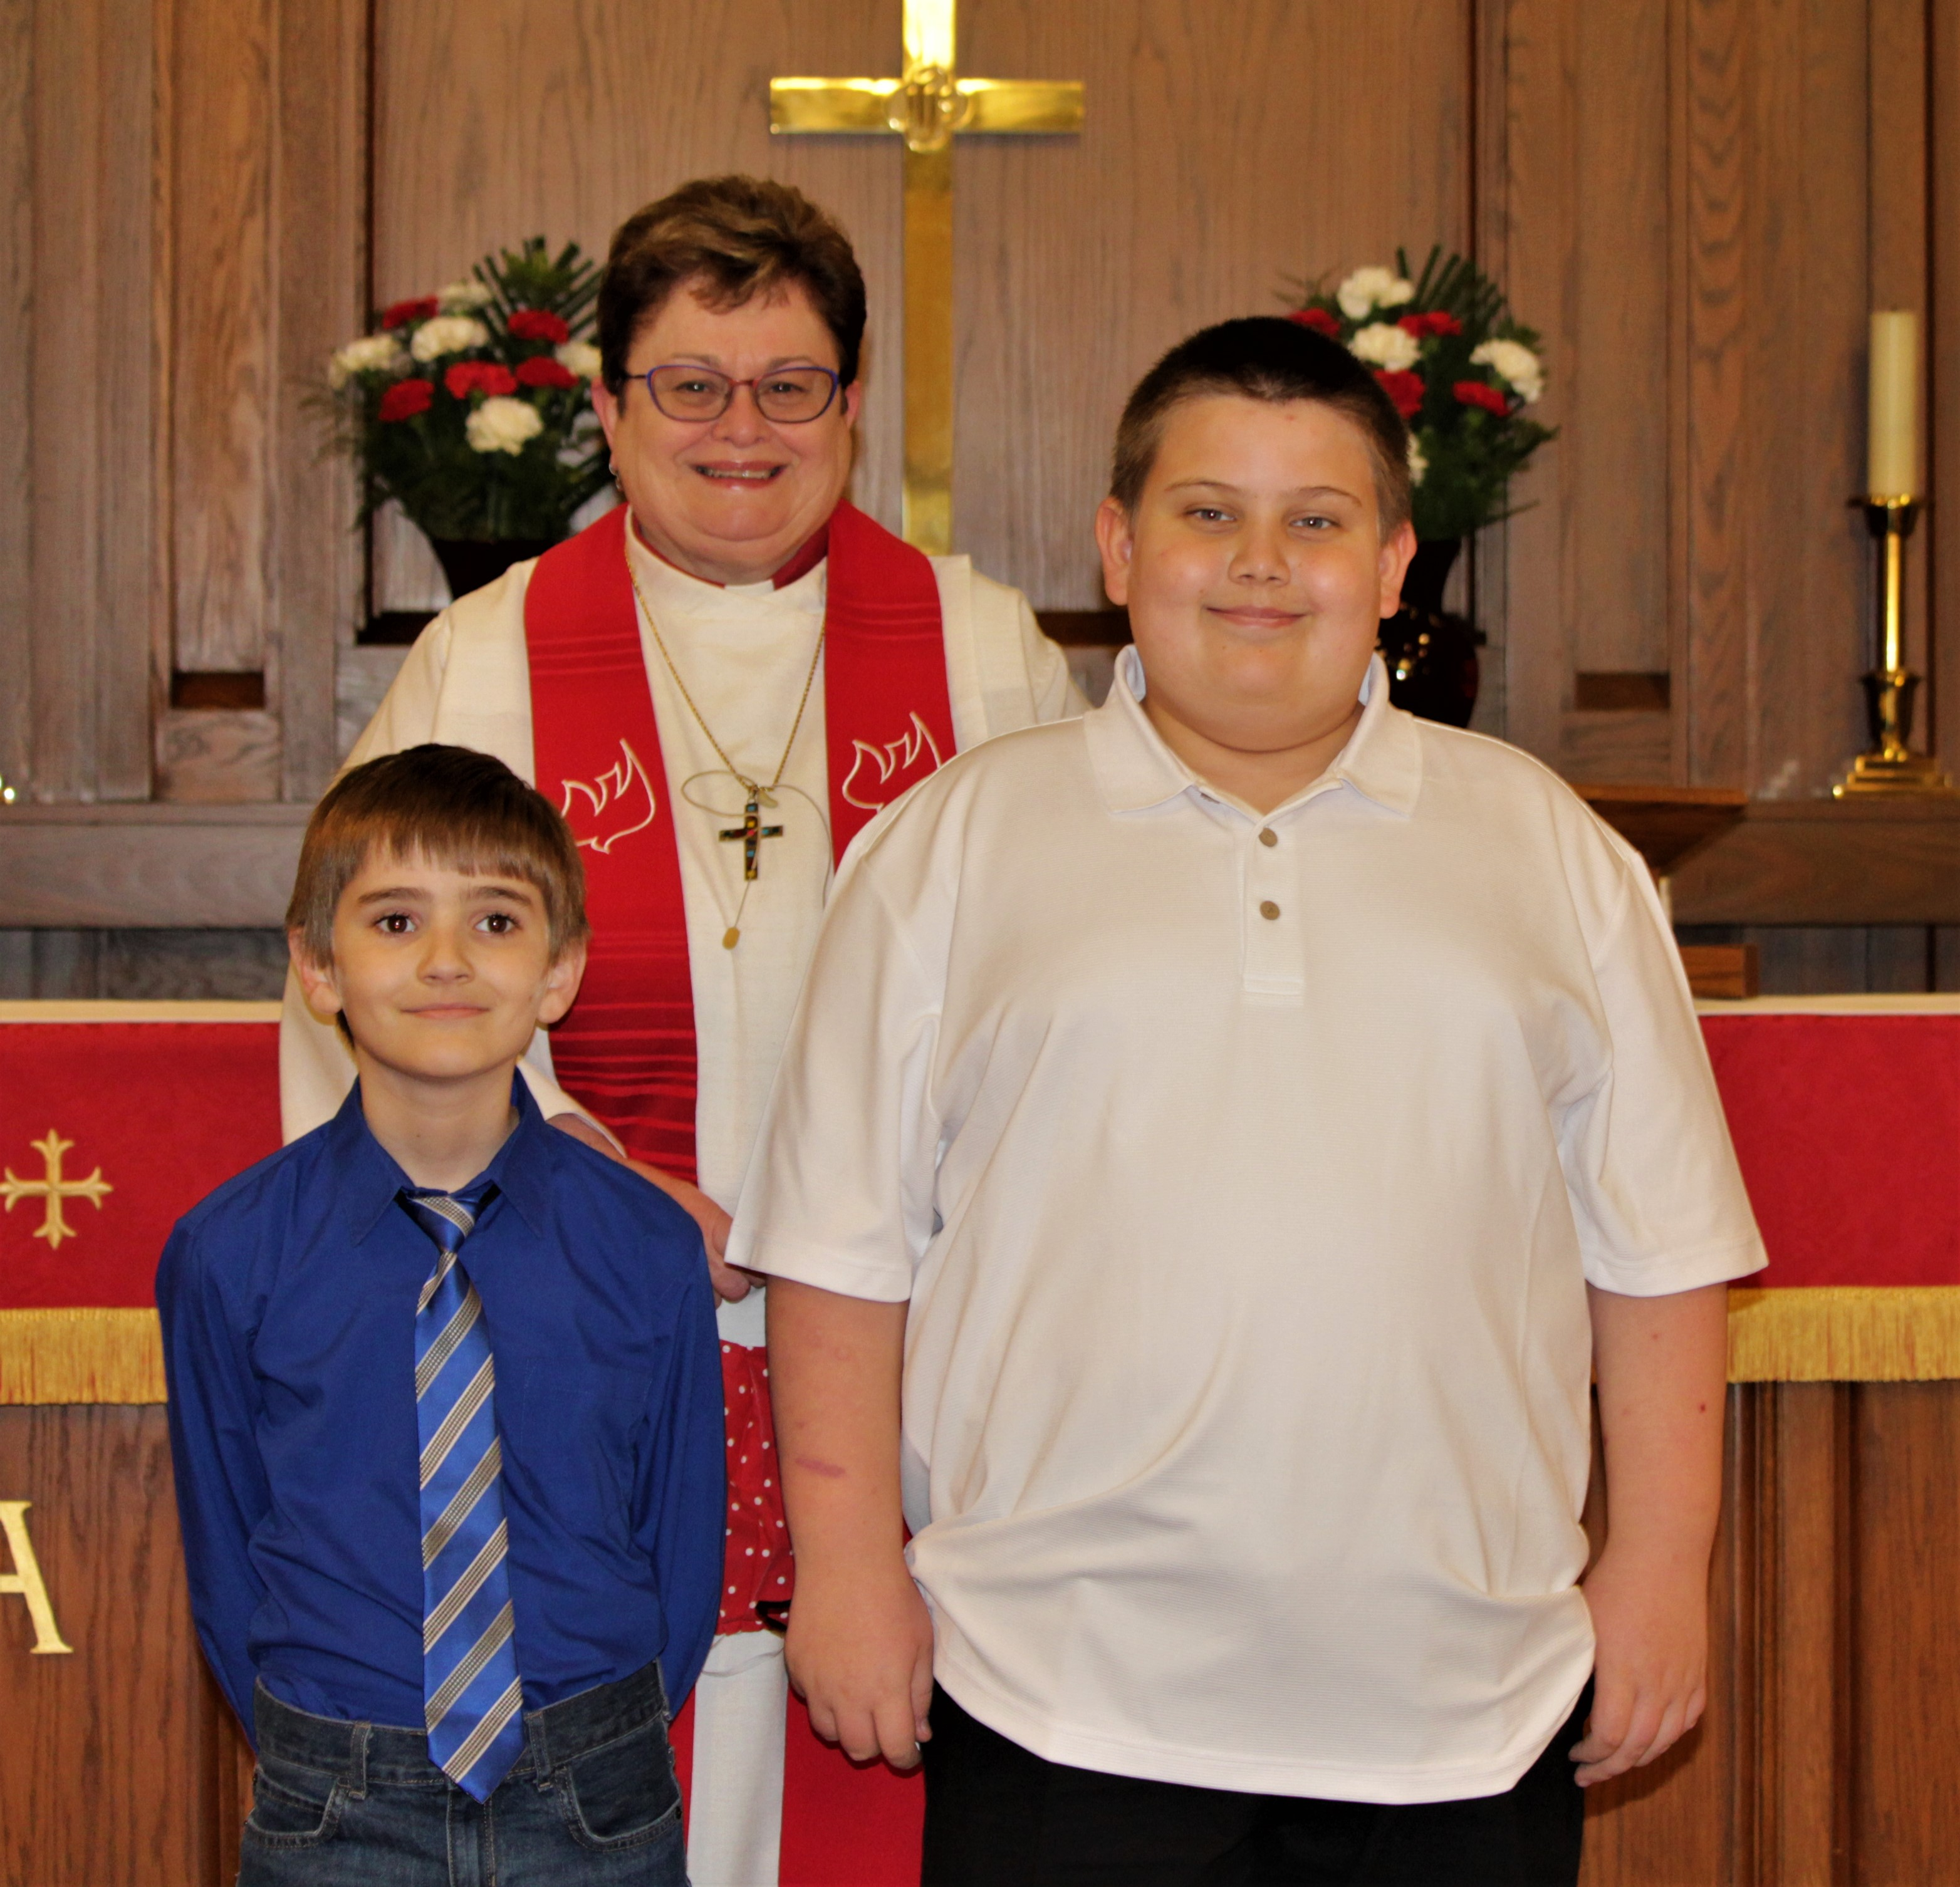 images/stories/HeaderImages/Frame3/First Communion Dayton and Grant.JPG